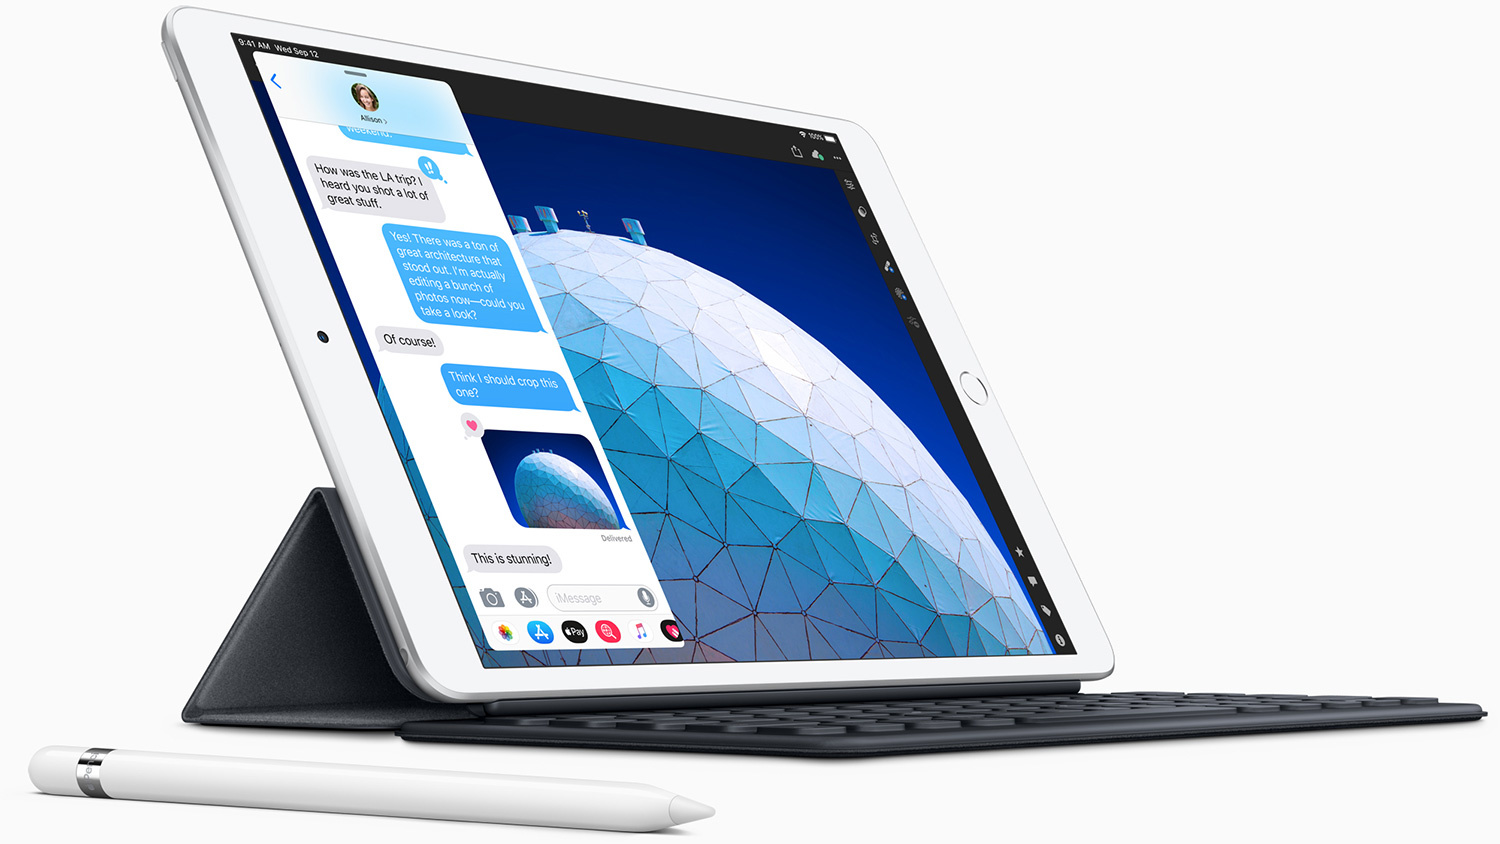 Apple Releases New iPad Air and iPad mini: Pencil Support